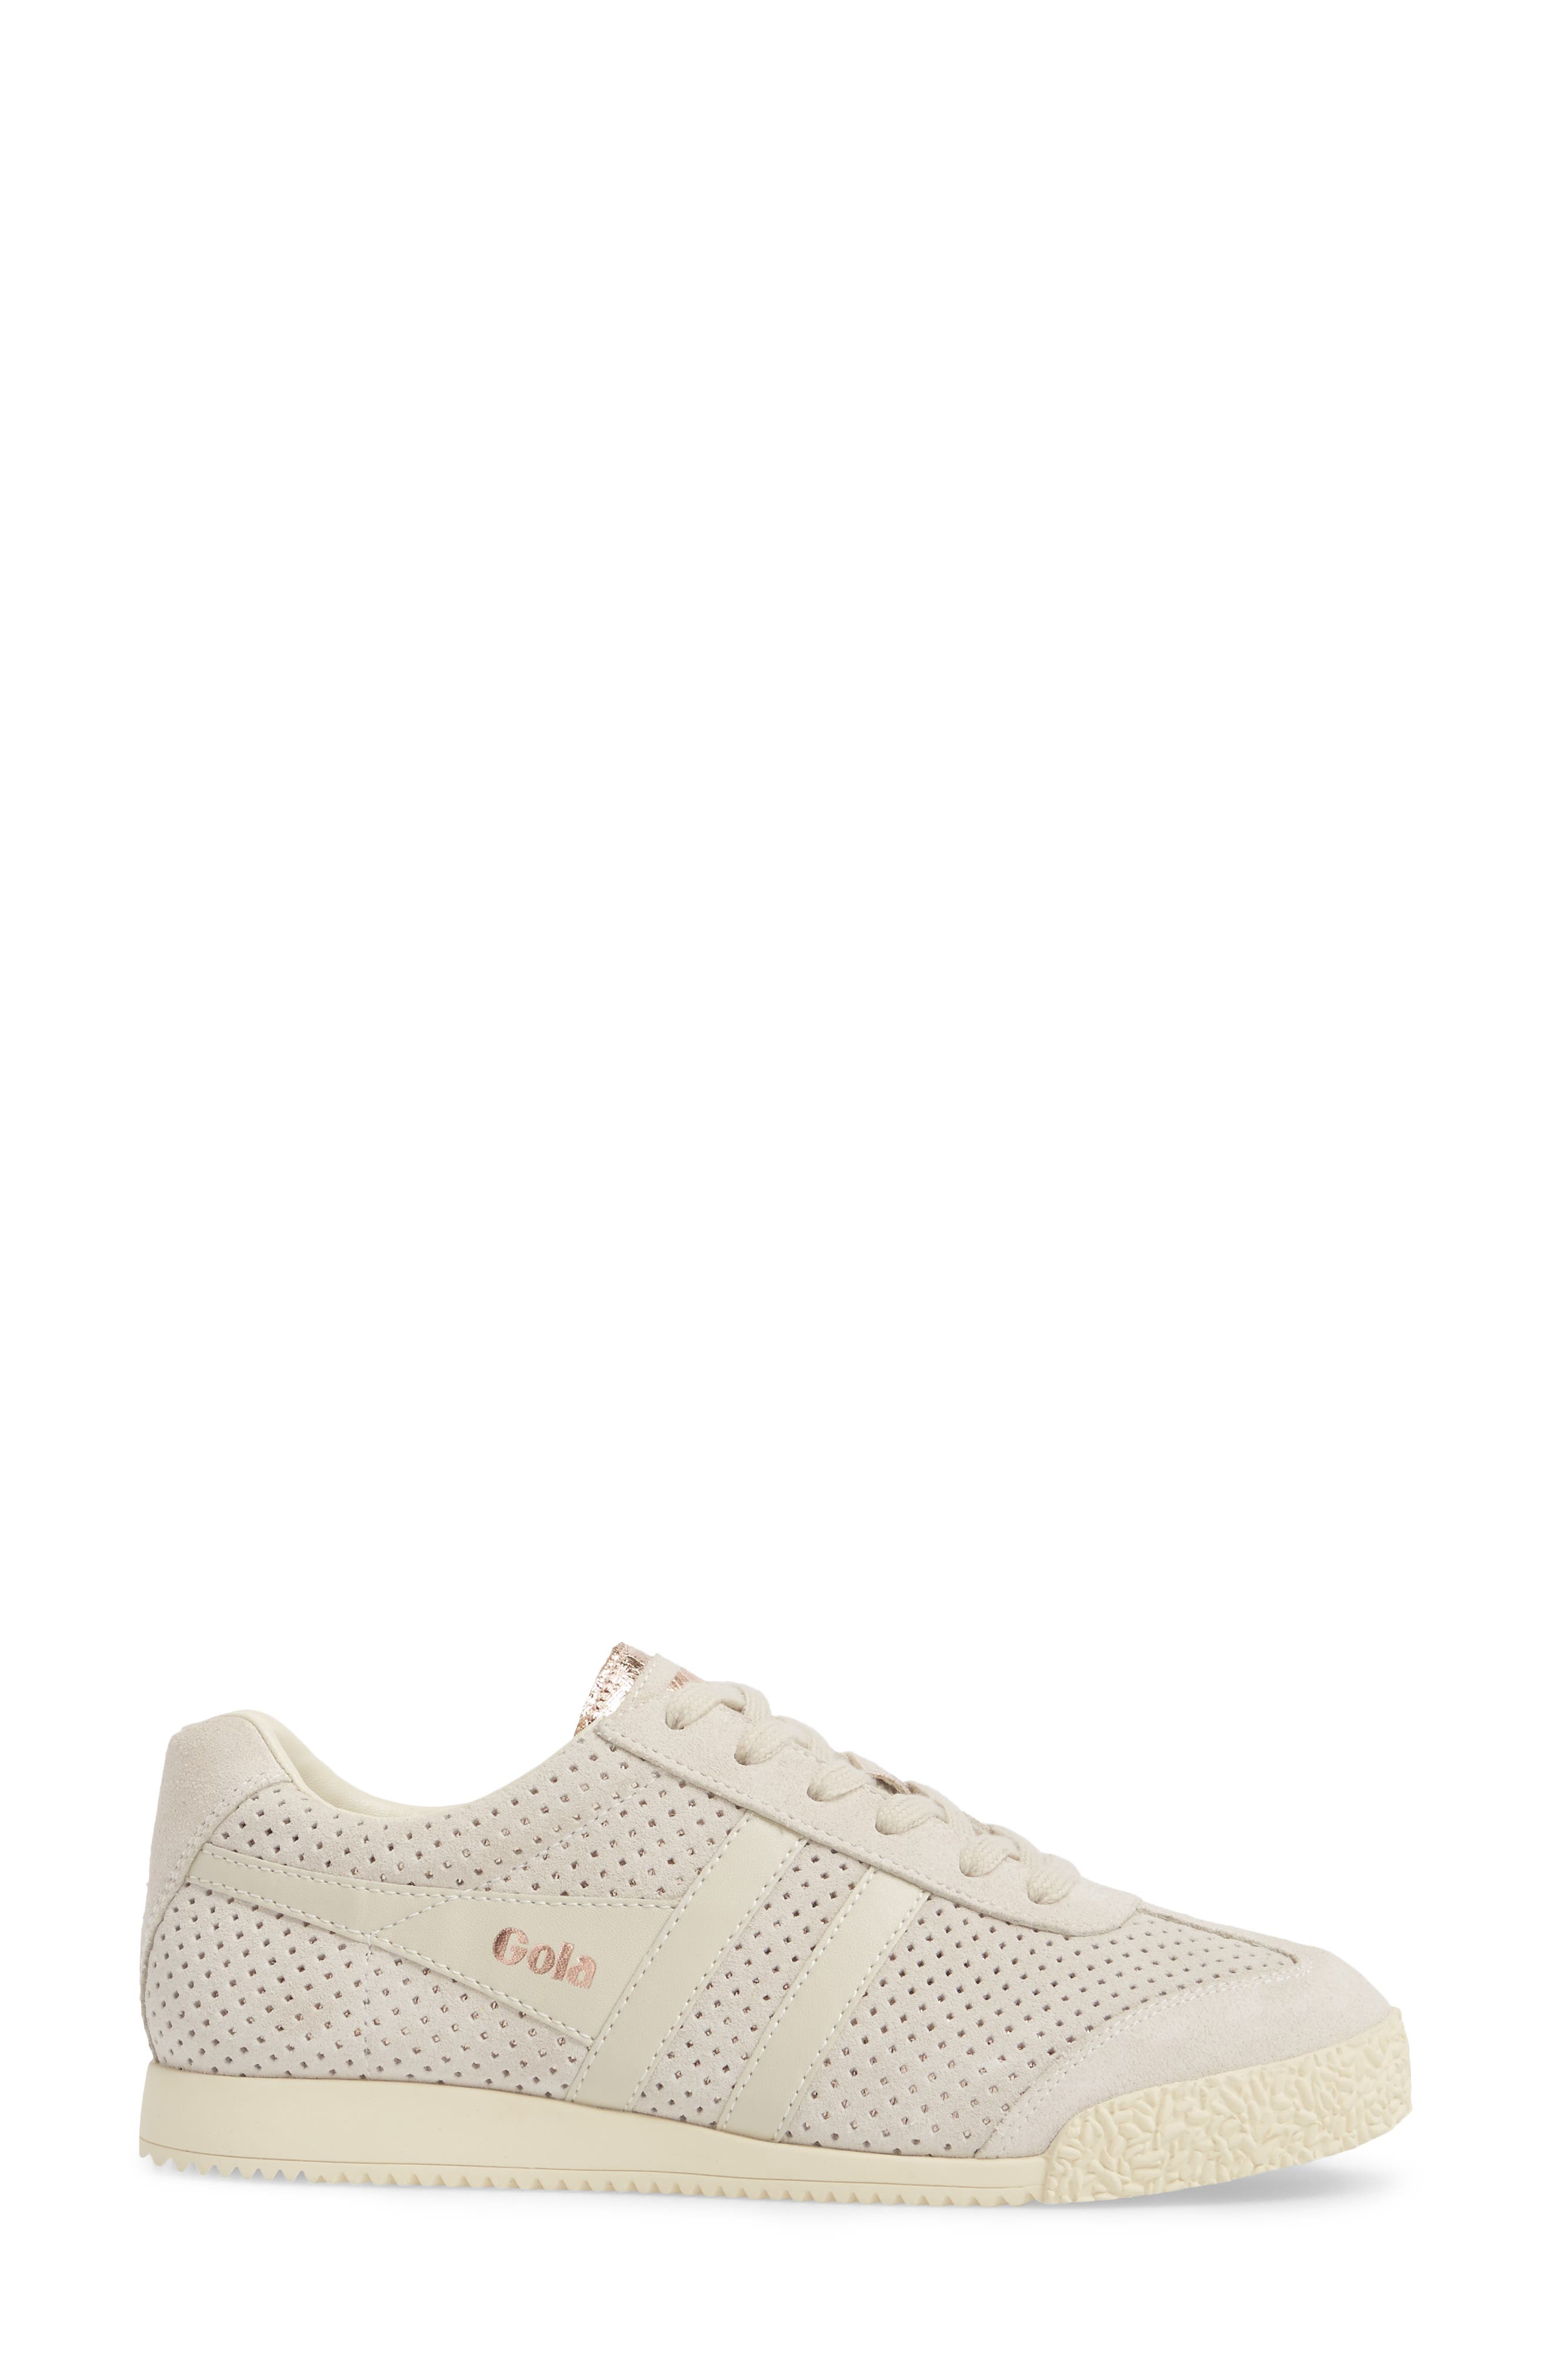 Harrier Glimmer Suede Low Top Sneaker,                             Alternate thumbnail 3, color,                             WINDCHIME/ GOLD/ OFF WHITE